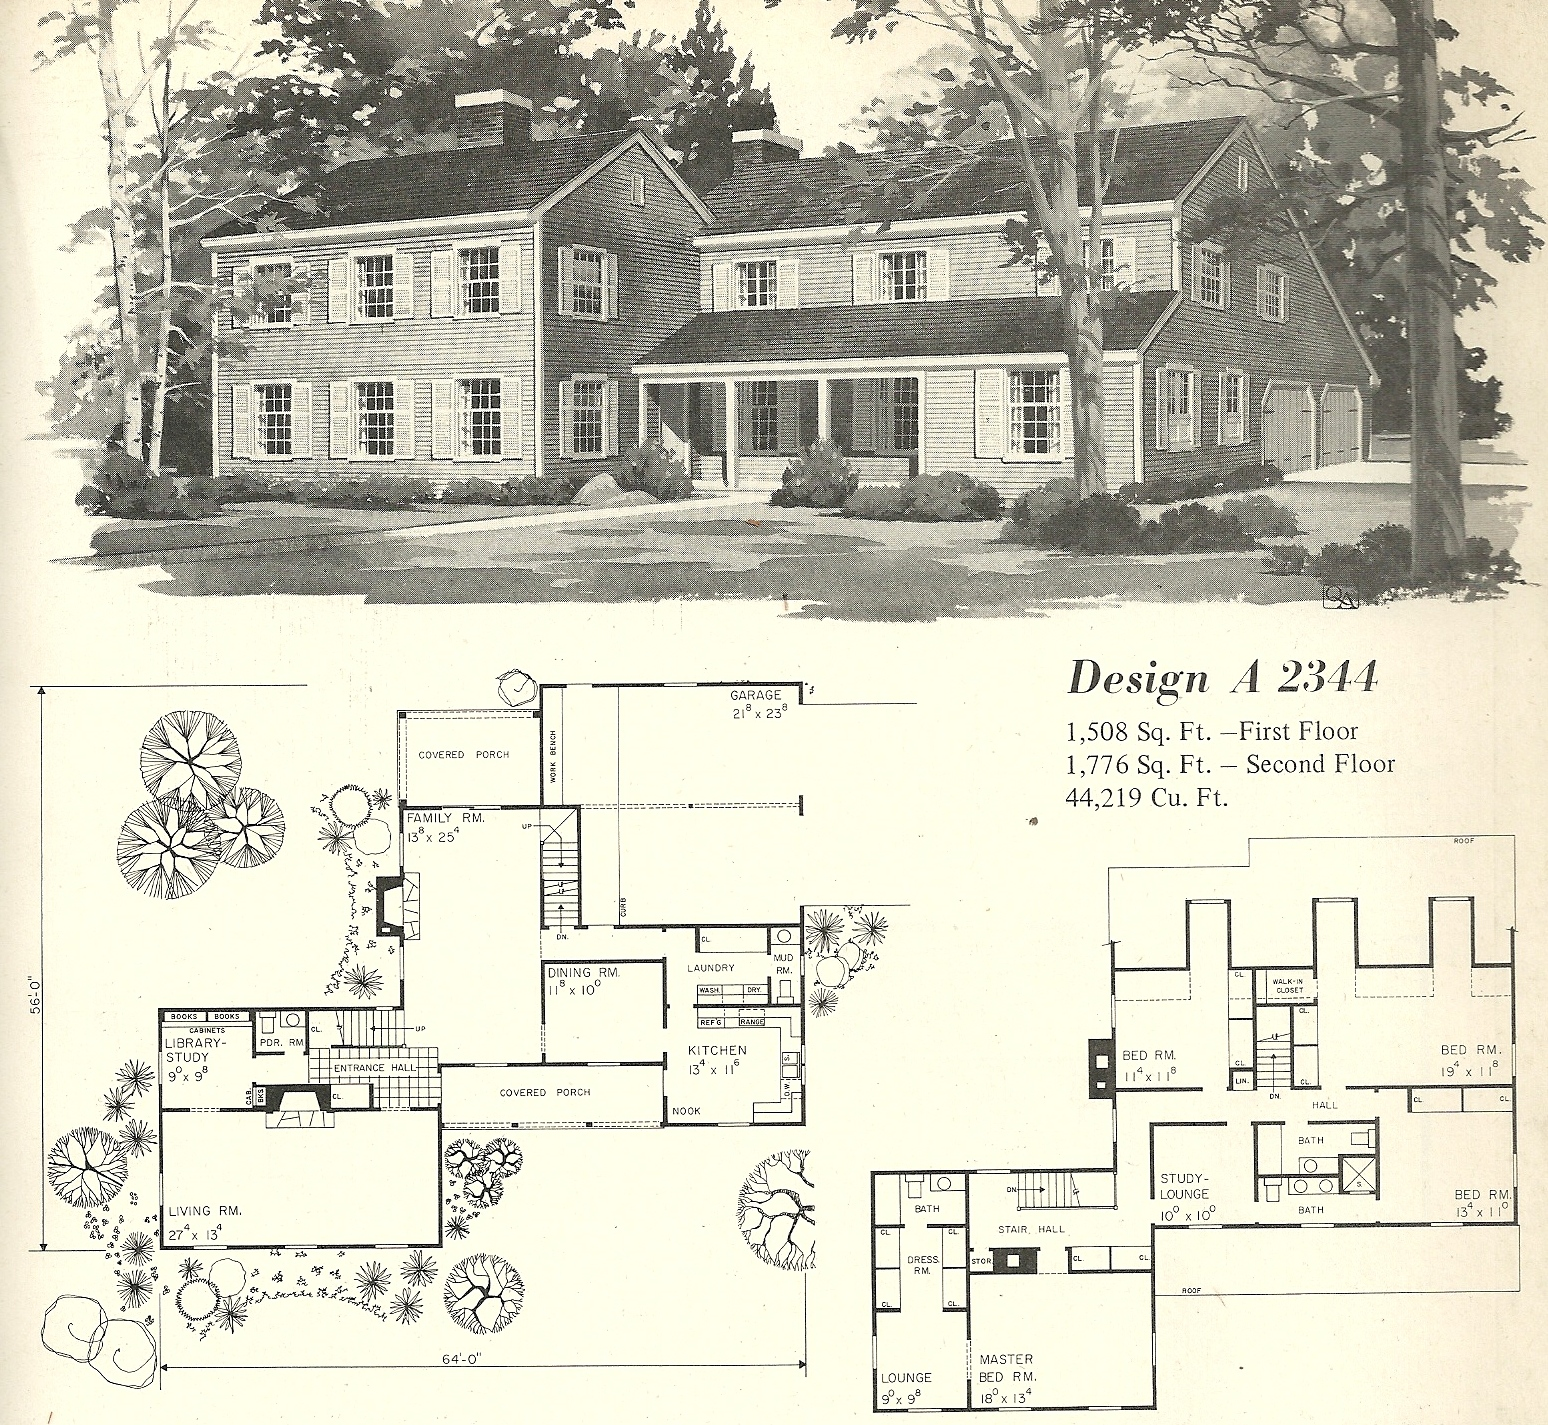 small old farmhouse floor plans images amp pictures becuo georgia farmhouse plan by max fulbright designs at home